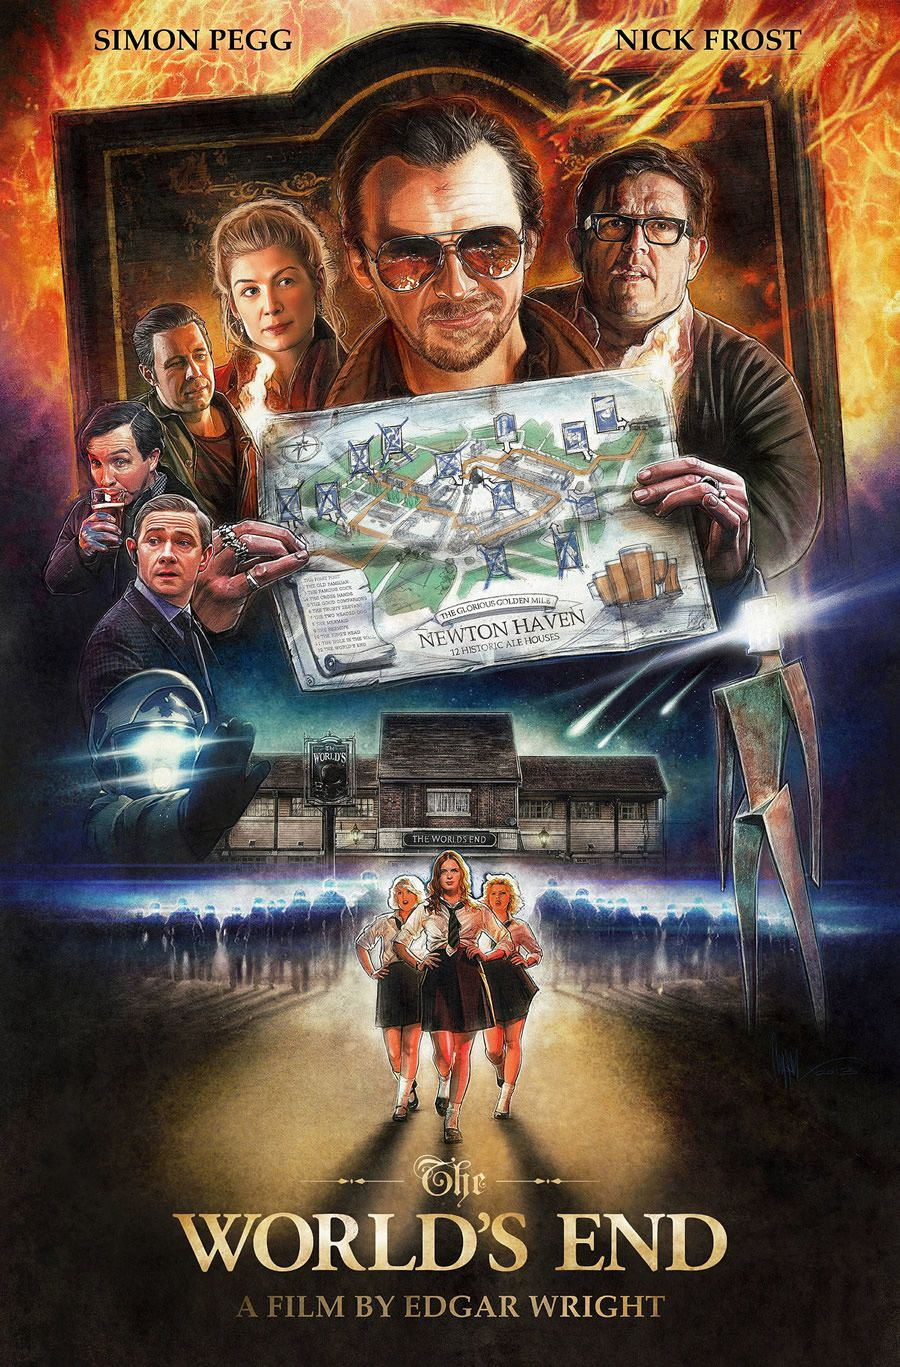 Paul shipper movie posters 9